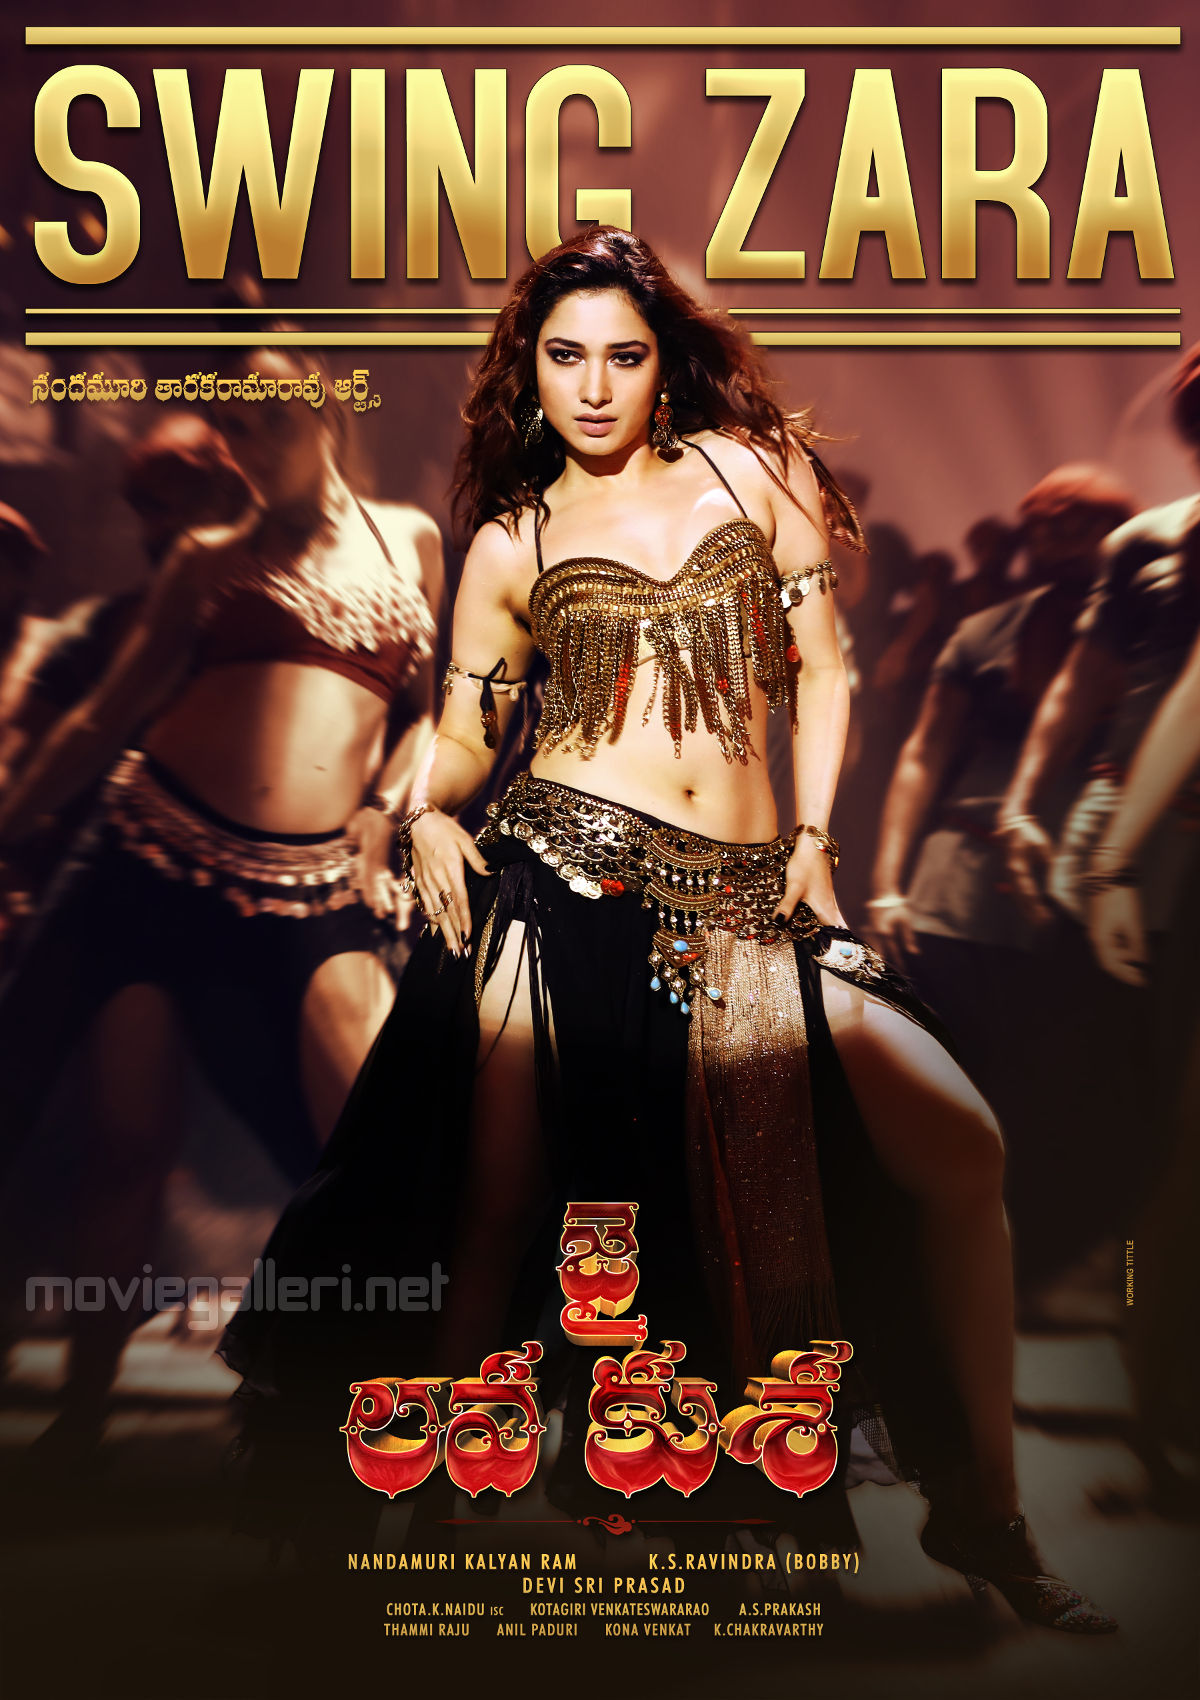 Hot Tamanna in Jai Lava Kusa special Song Swing Zara Poster